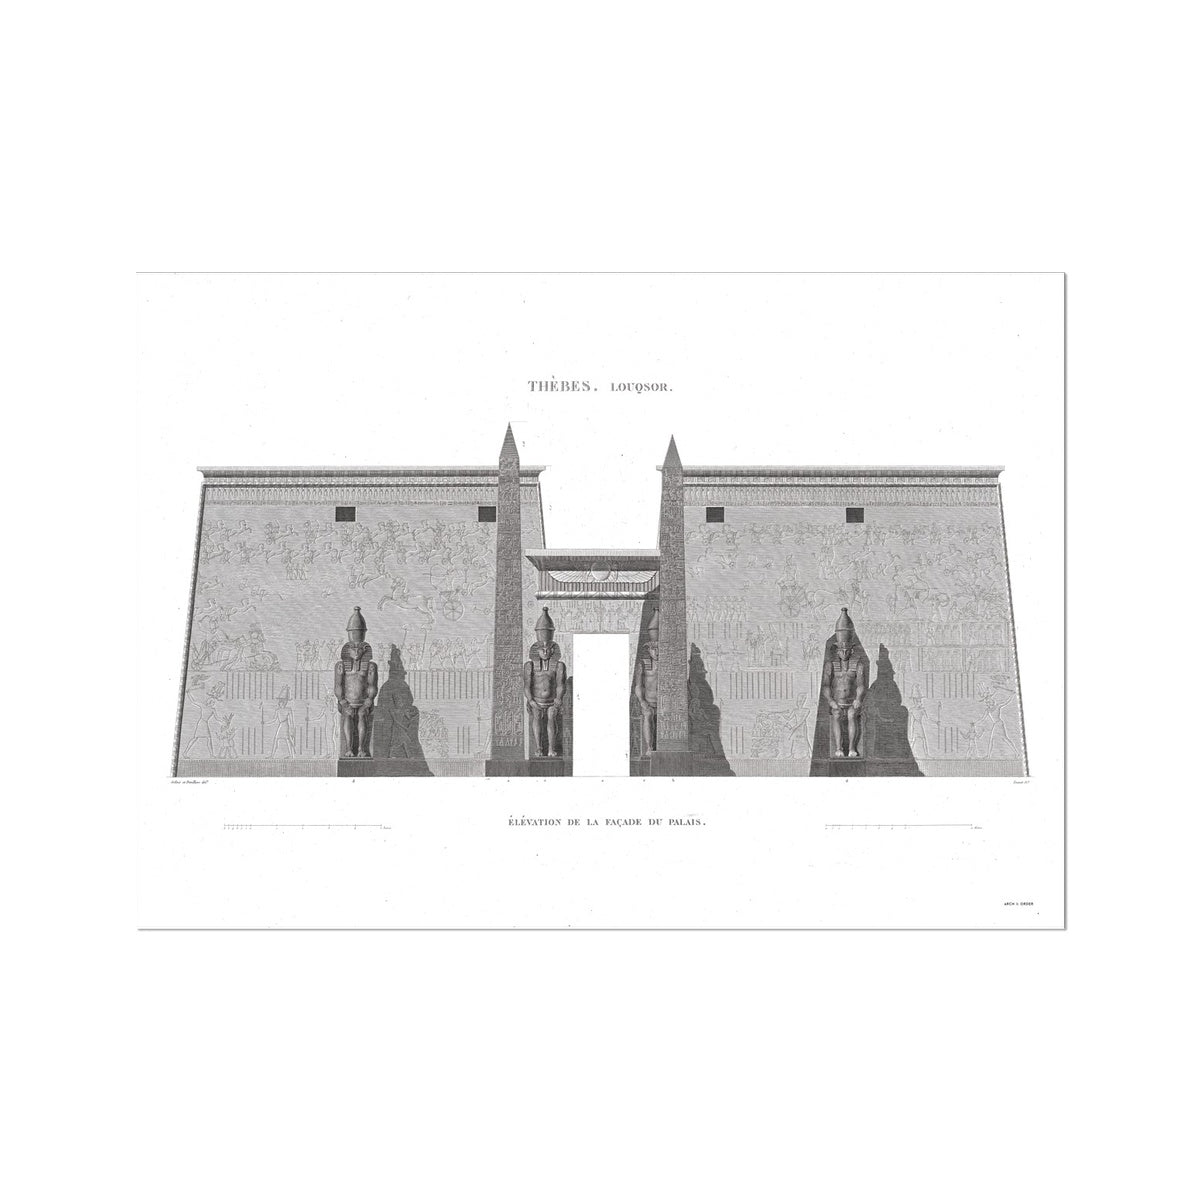 Primary Elevation of the Palace - Luxor - Thebes Egypt -  Etching Paper Print